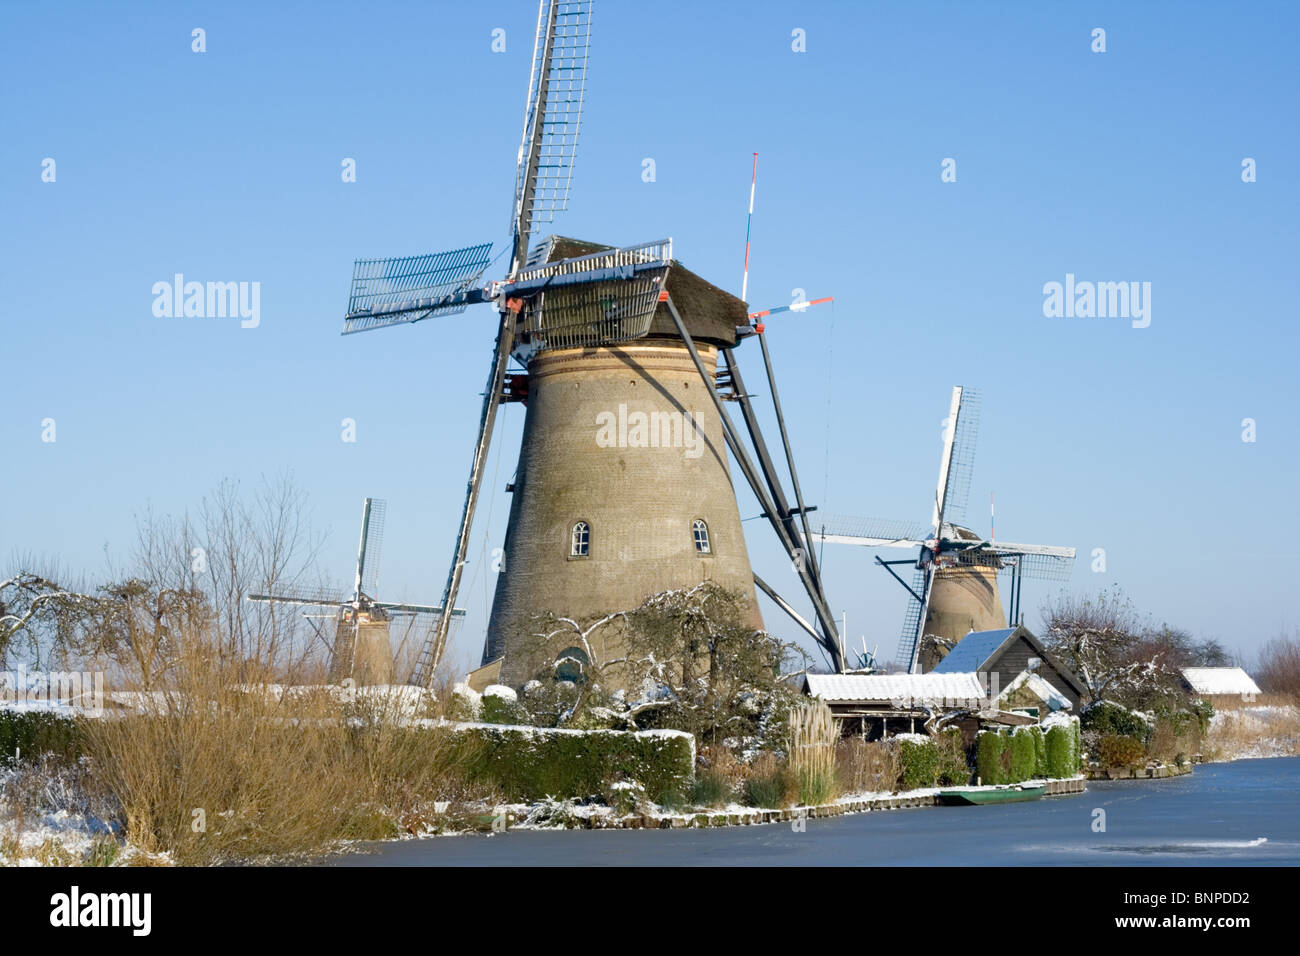 Dutch touristic windmill site of Kinderdijk. Zuid-Holland, The Netherlands - Stock Image